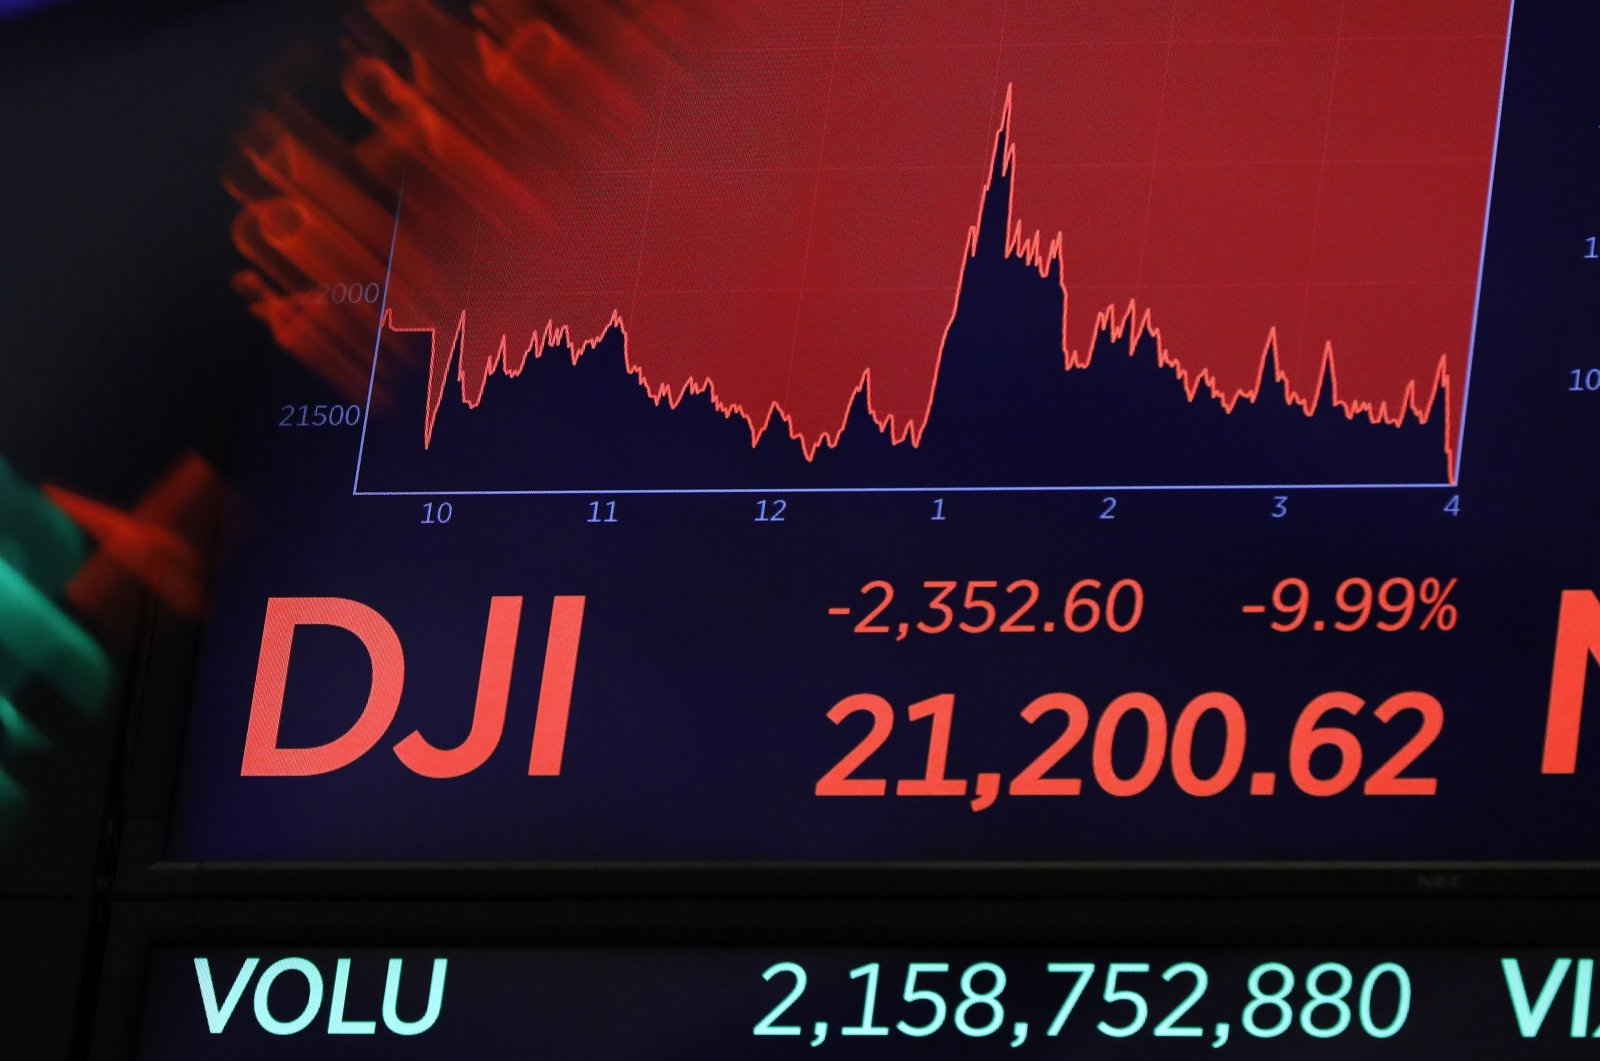 In this Thursday, March 12, 2020, file photo, a board above the trading floor of the New York Stock Exchange shows the closing Dow Jones Industrial Average number. (AP Photo)